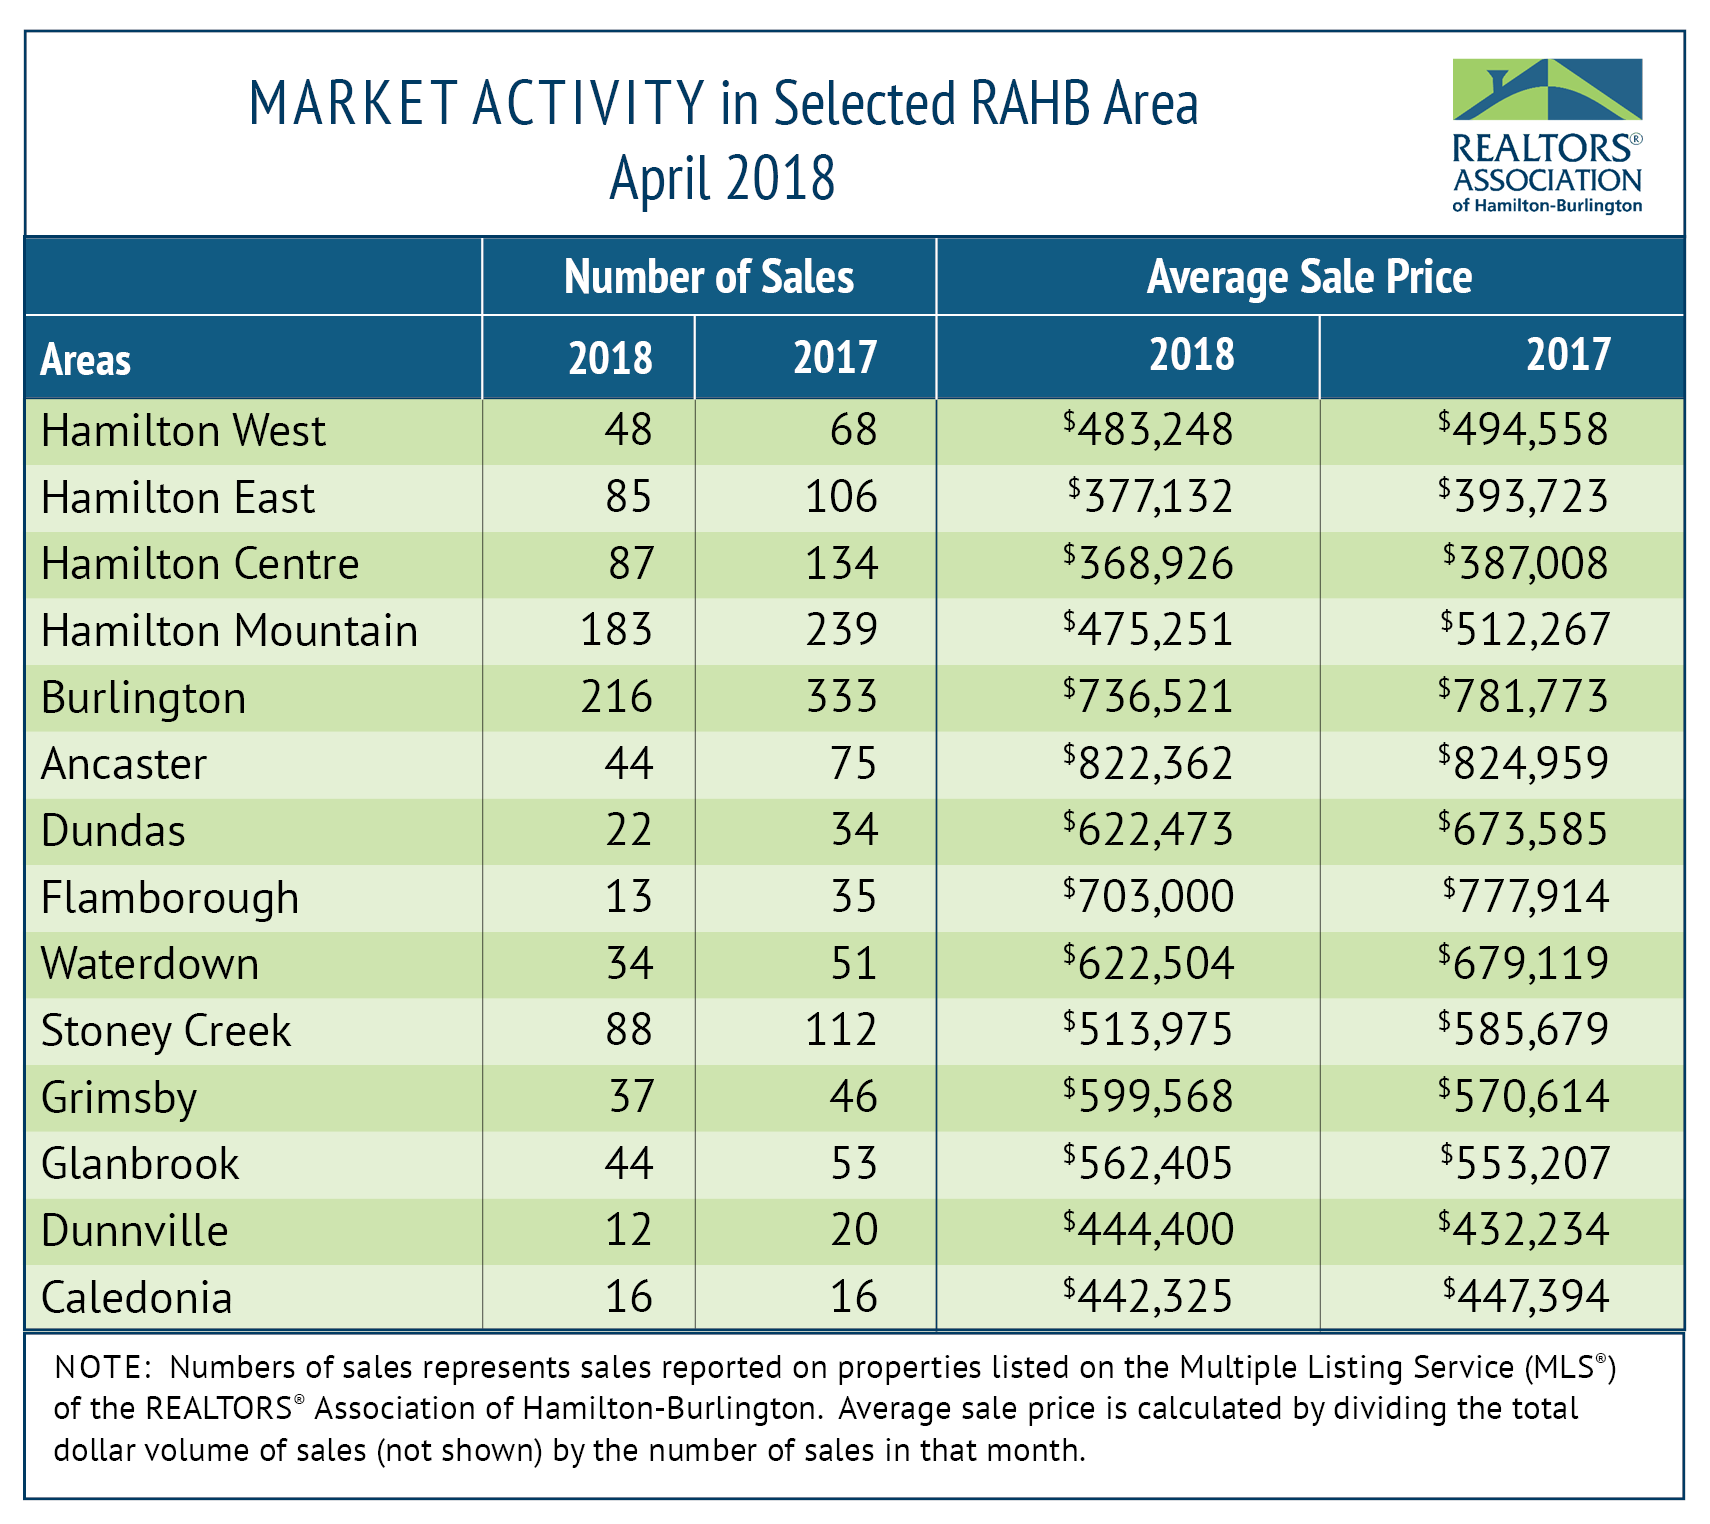 RAHB Market Activity for Apr